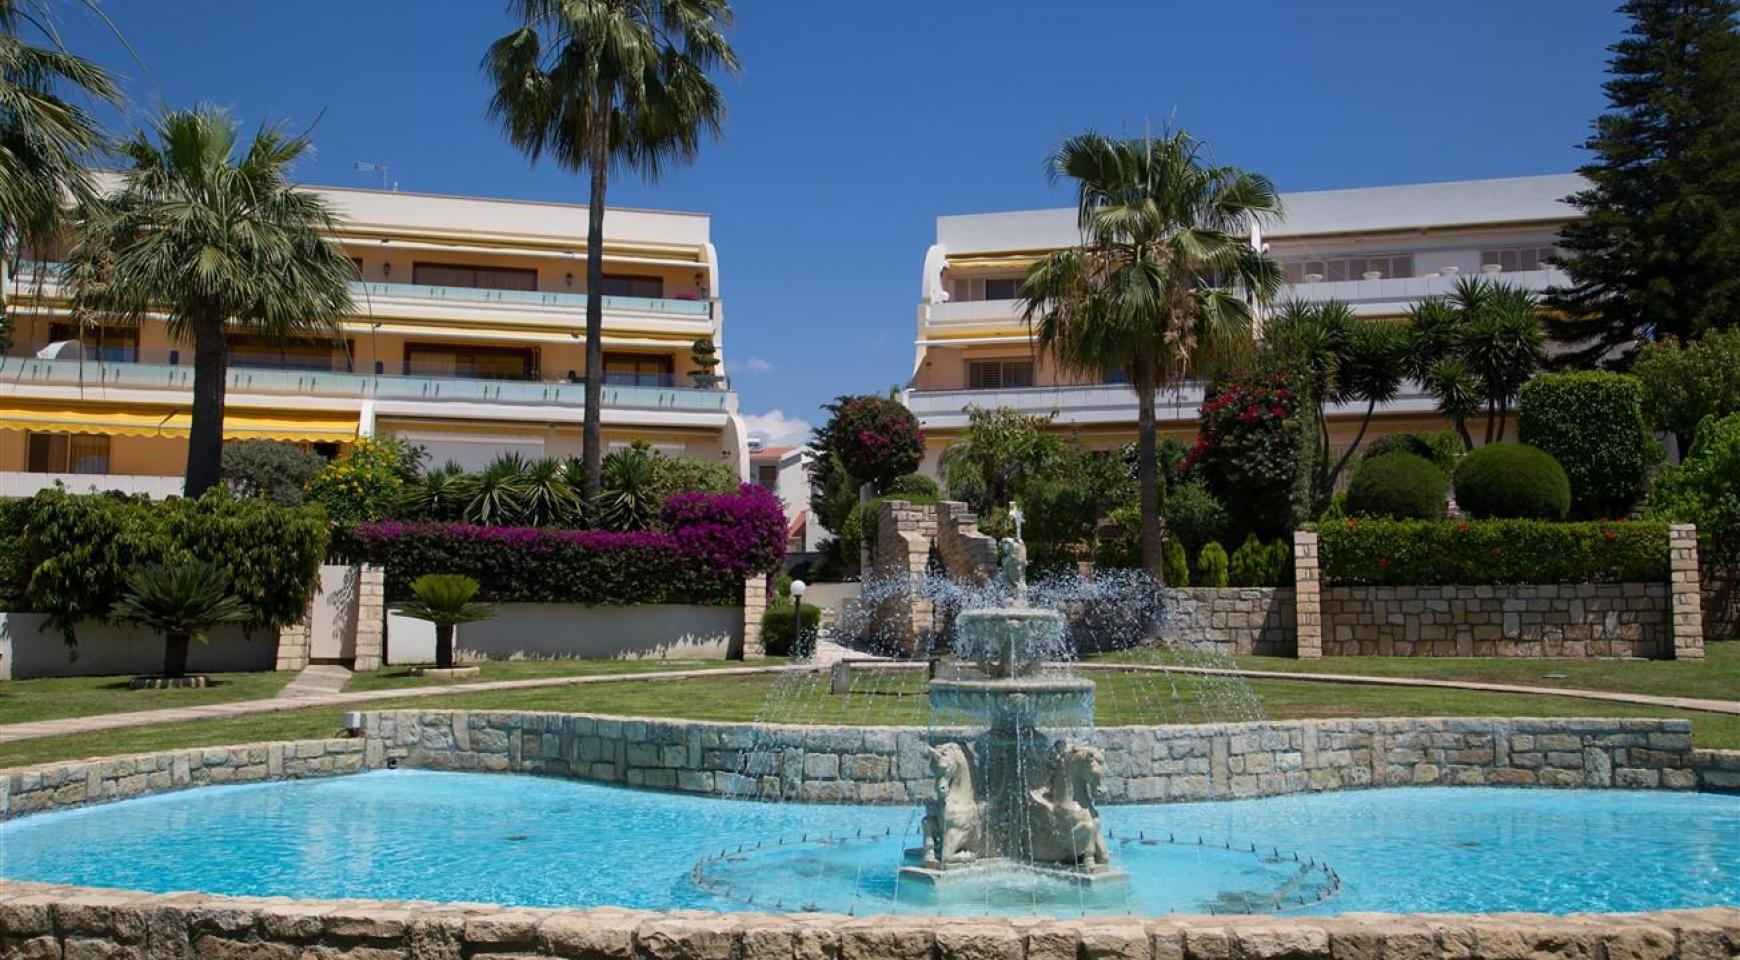 Αντίγραφο Luxury 3 Bedroom Apartment Thera 102 by the Sea - 6